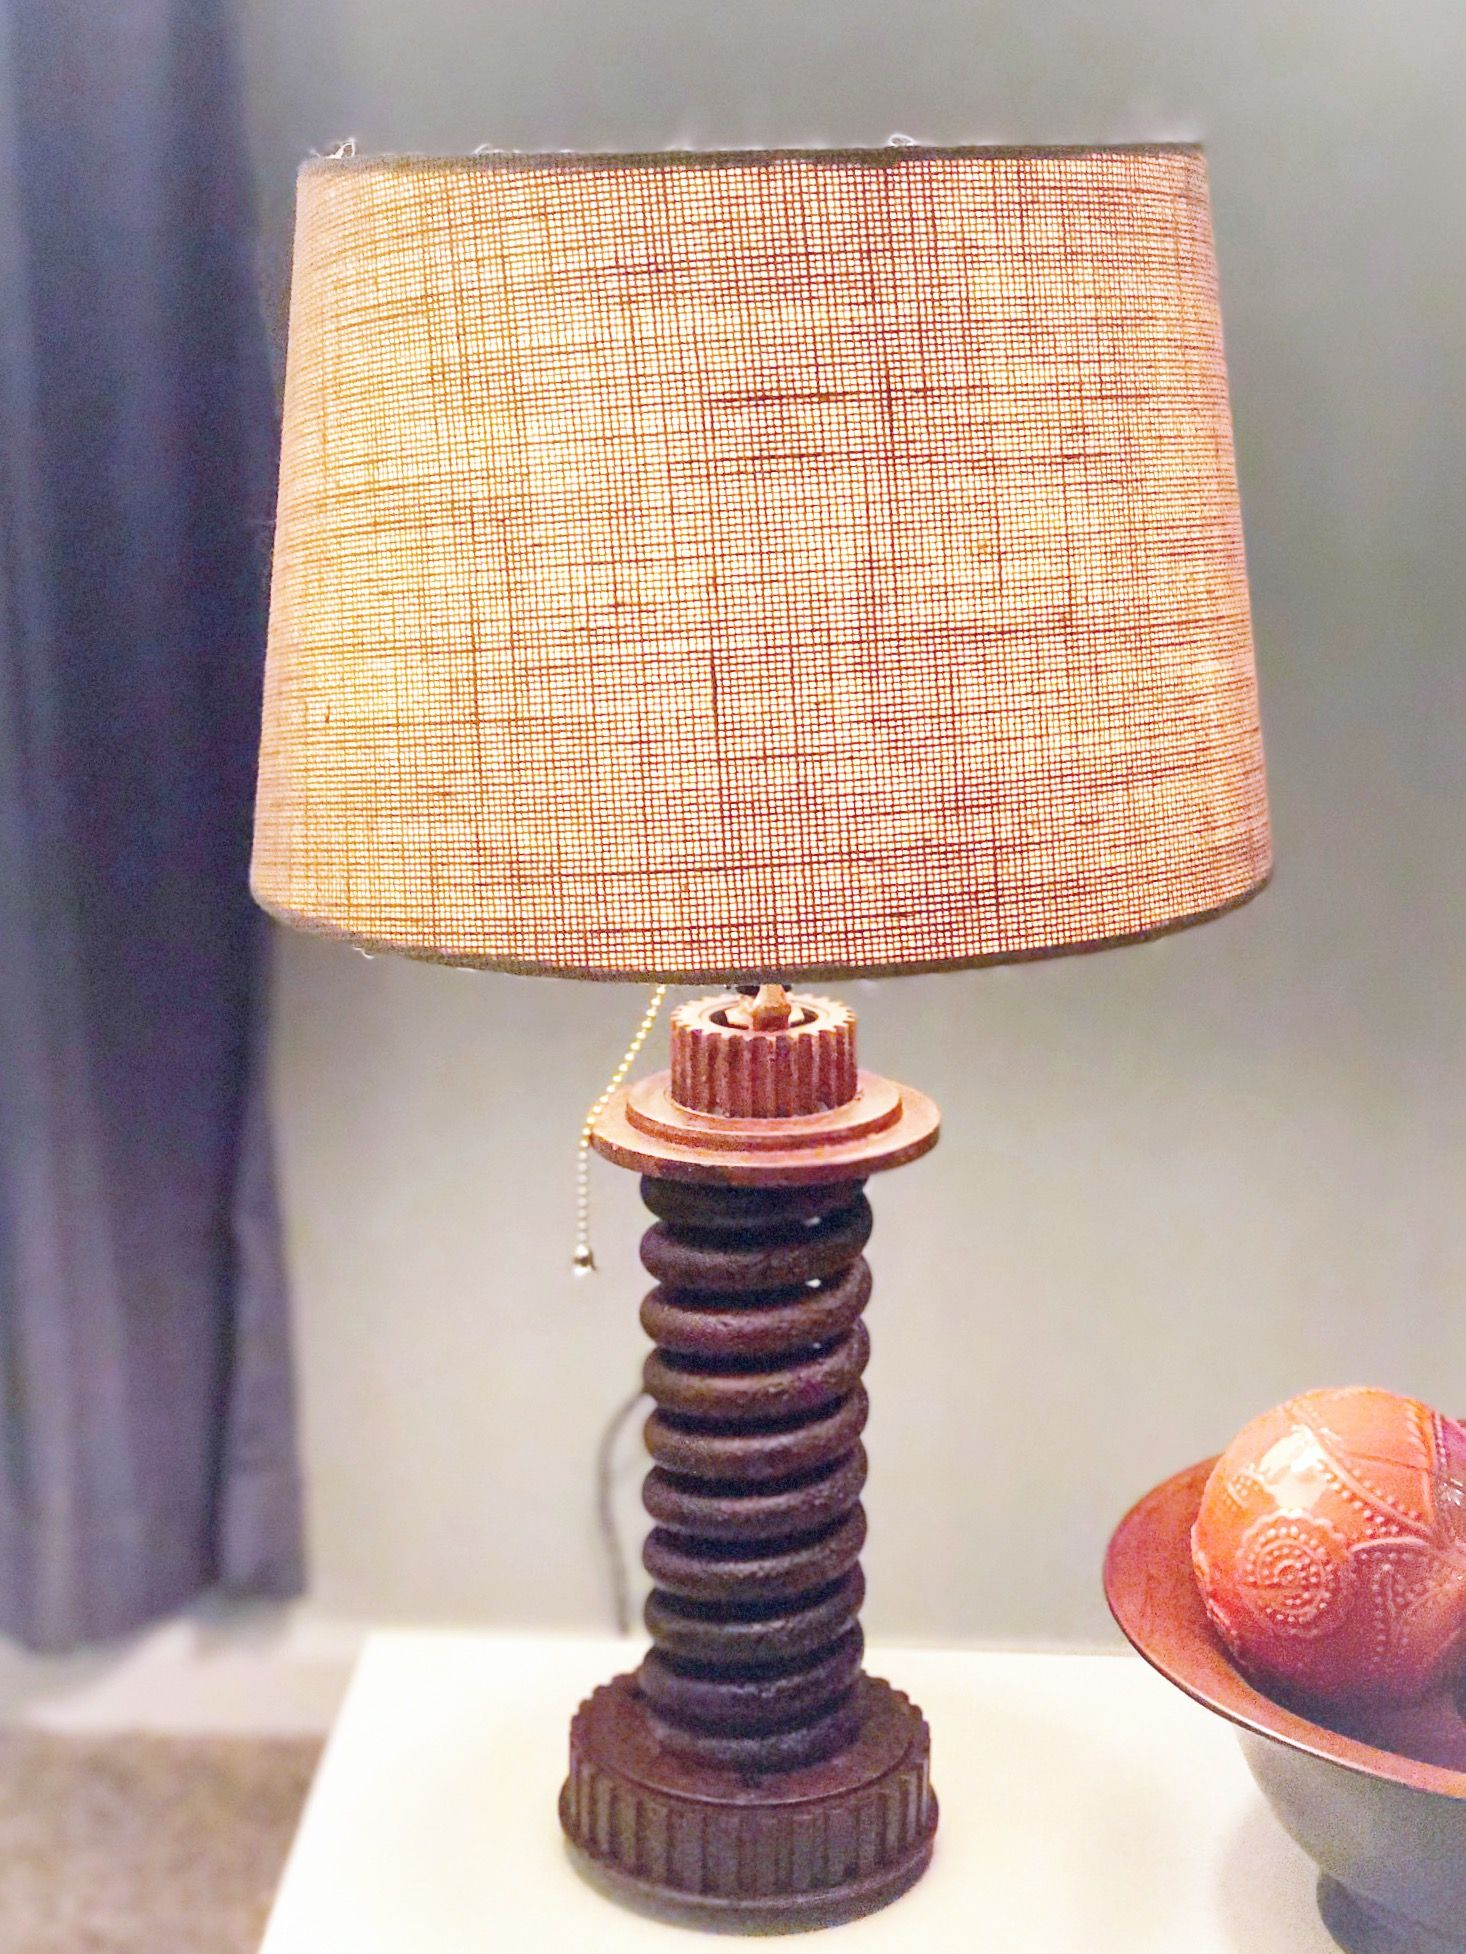 Upcycled Spring Lamp by Ridge&HollowLLC Industrial